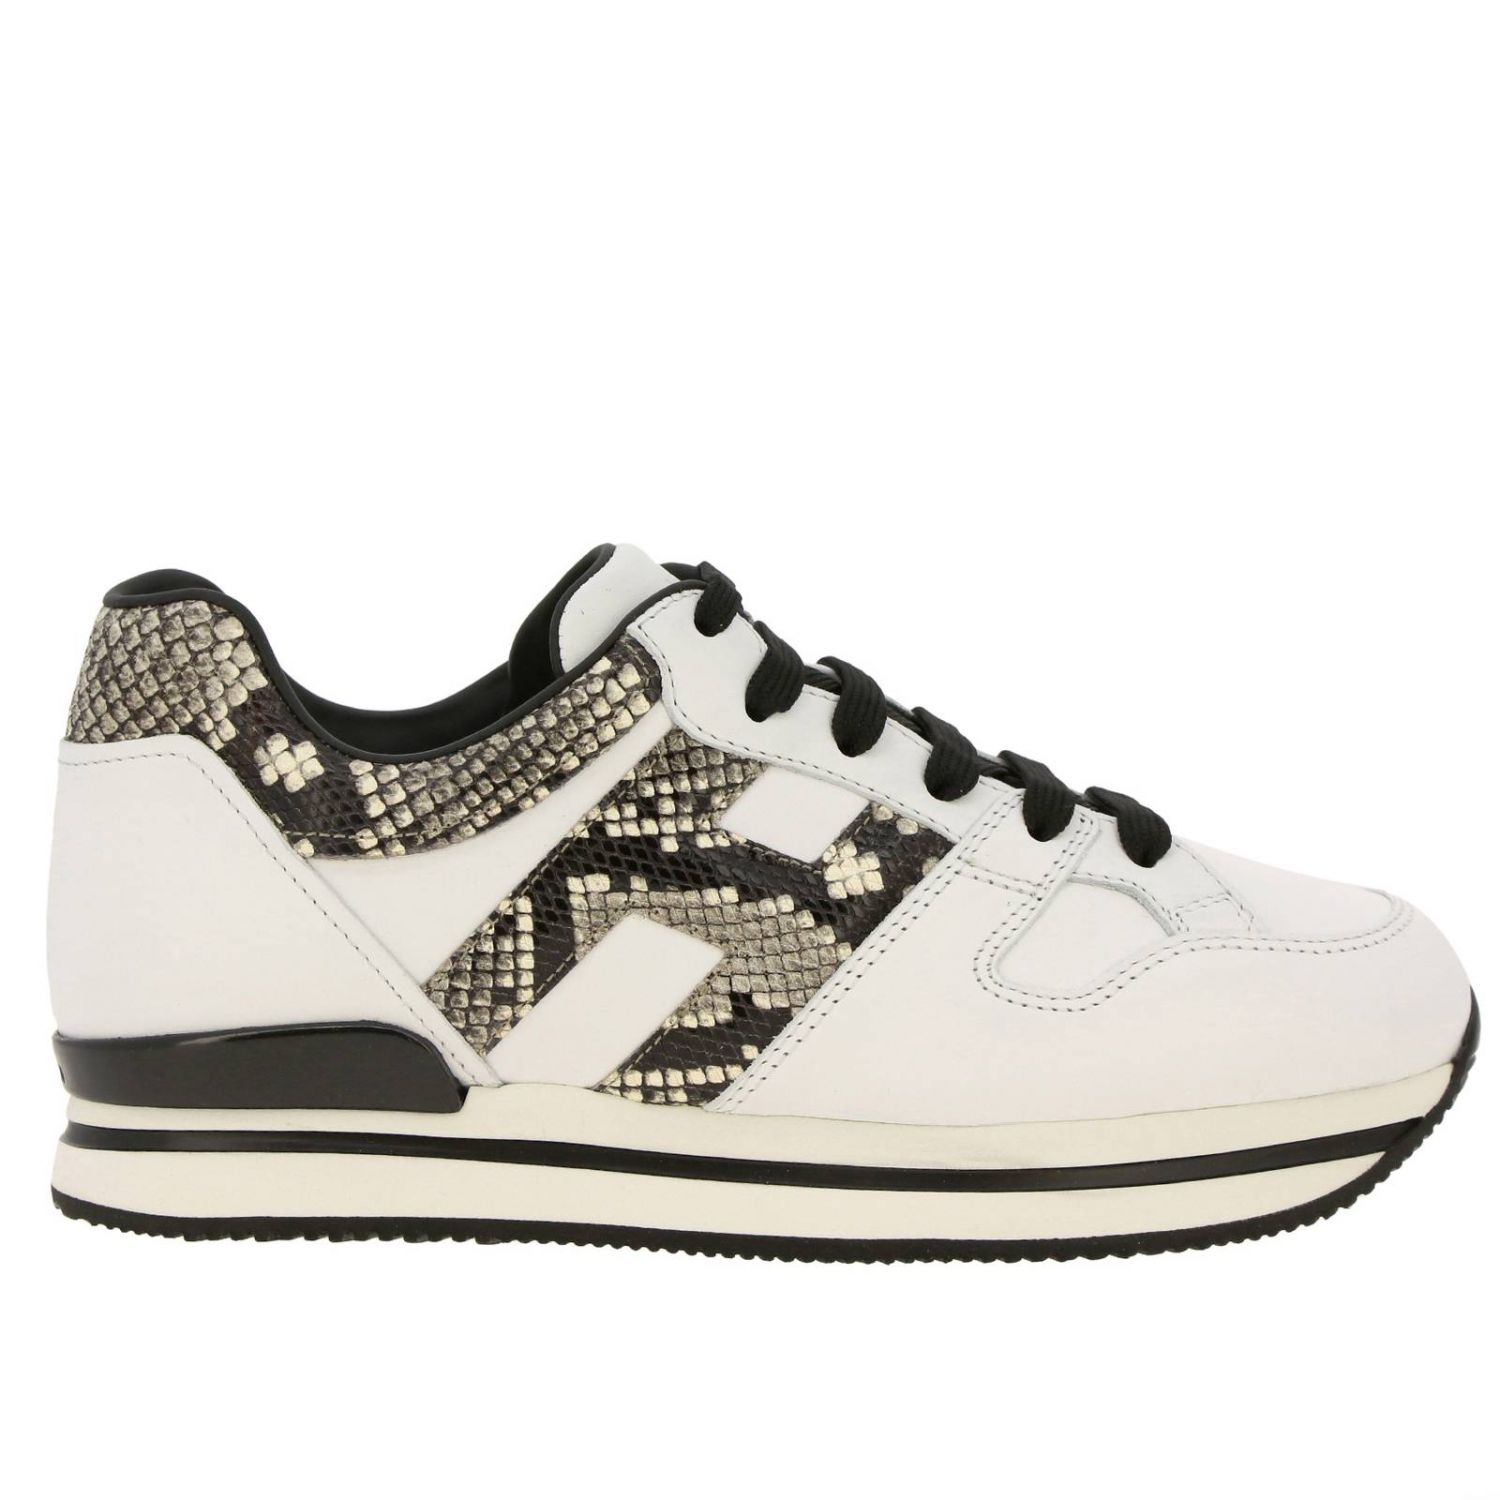 222 Hogan sneakers in leather with H snake print